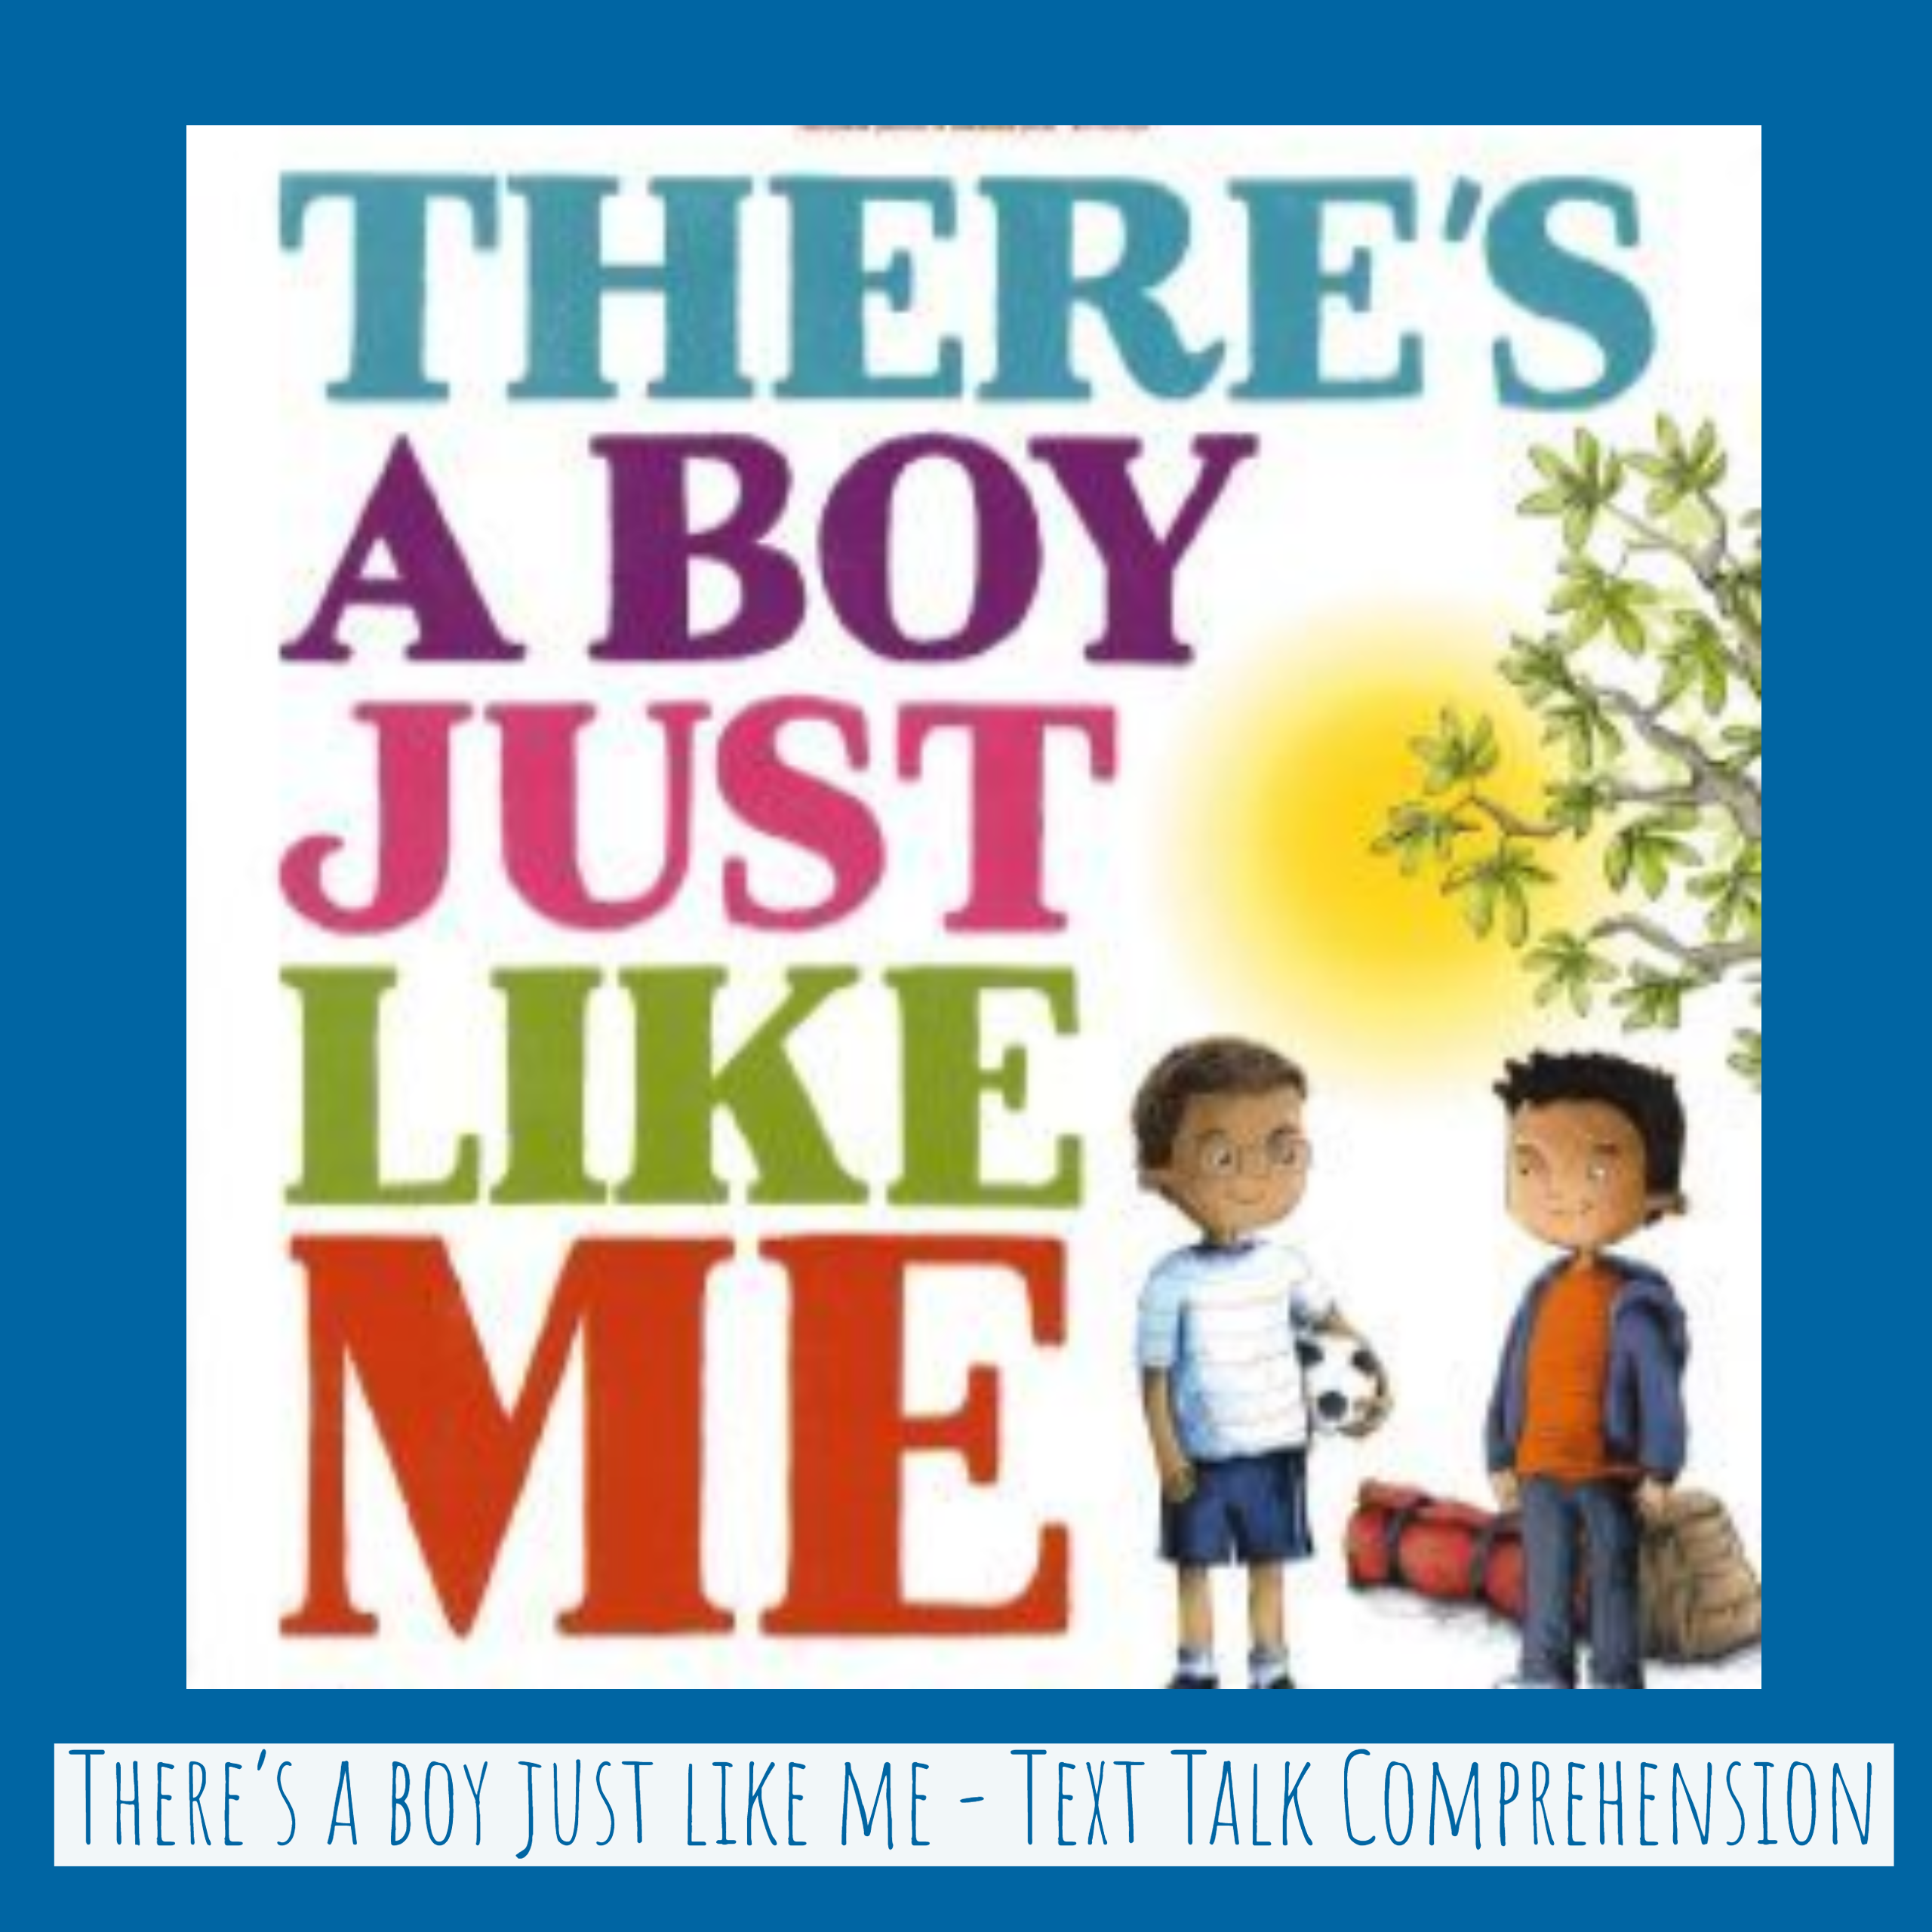 There's a boy just like me